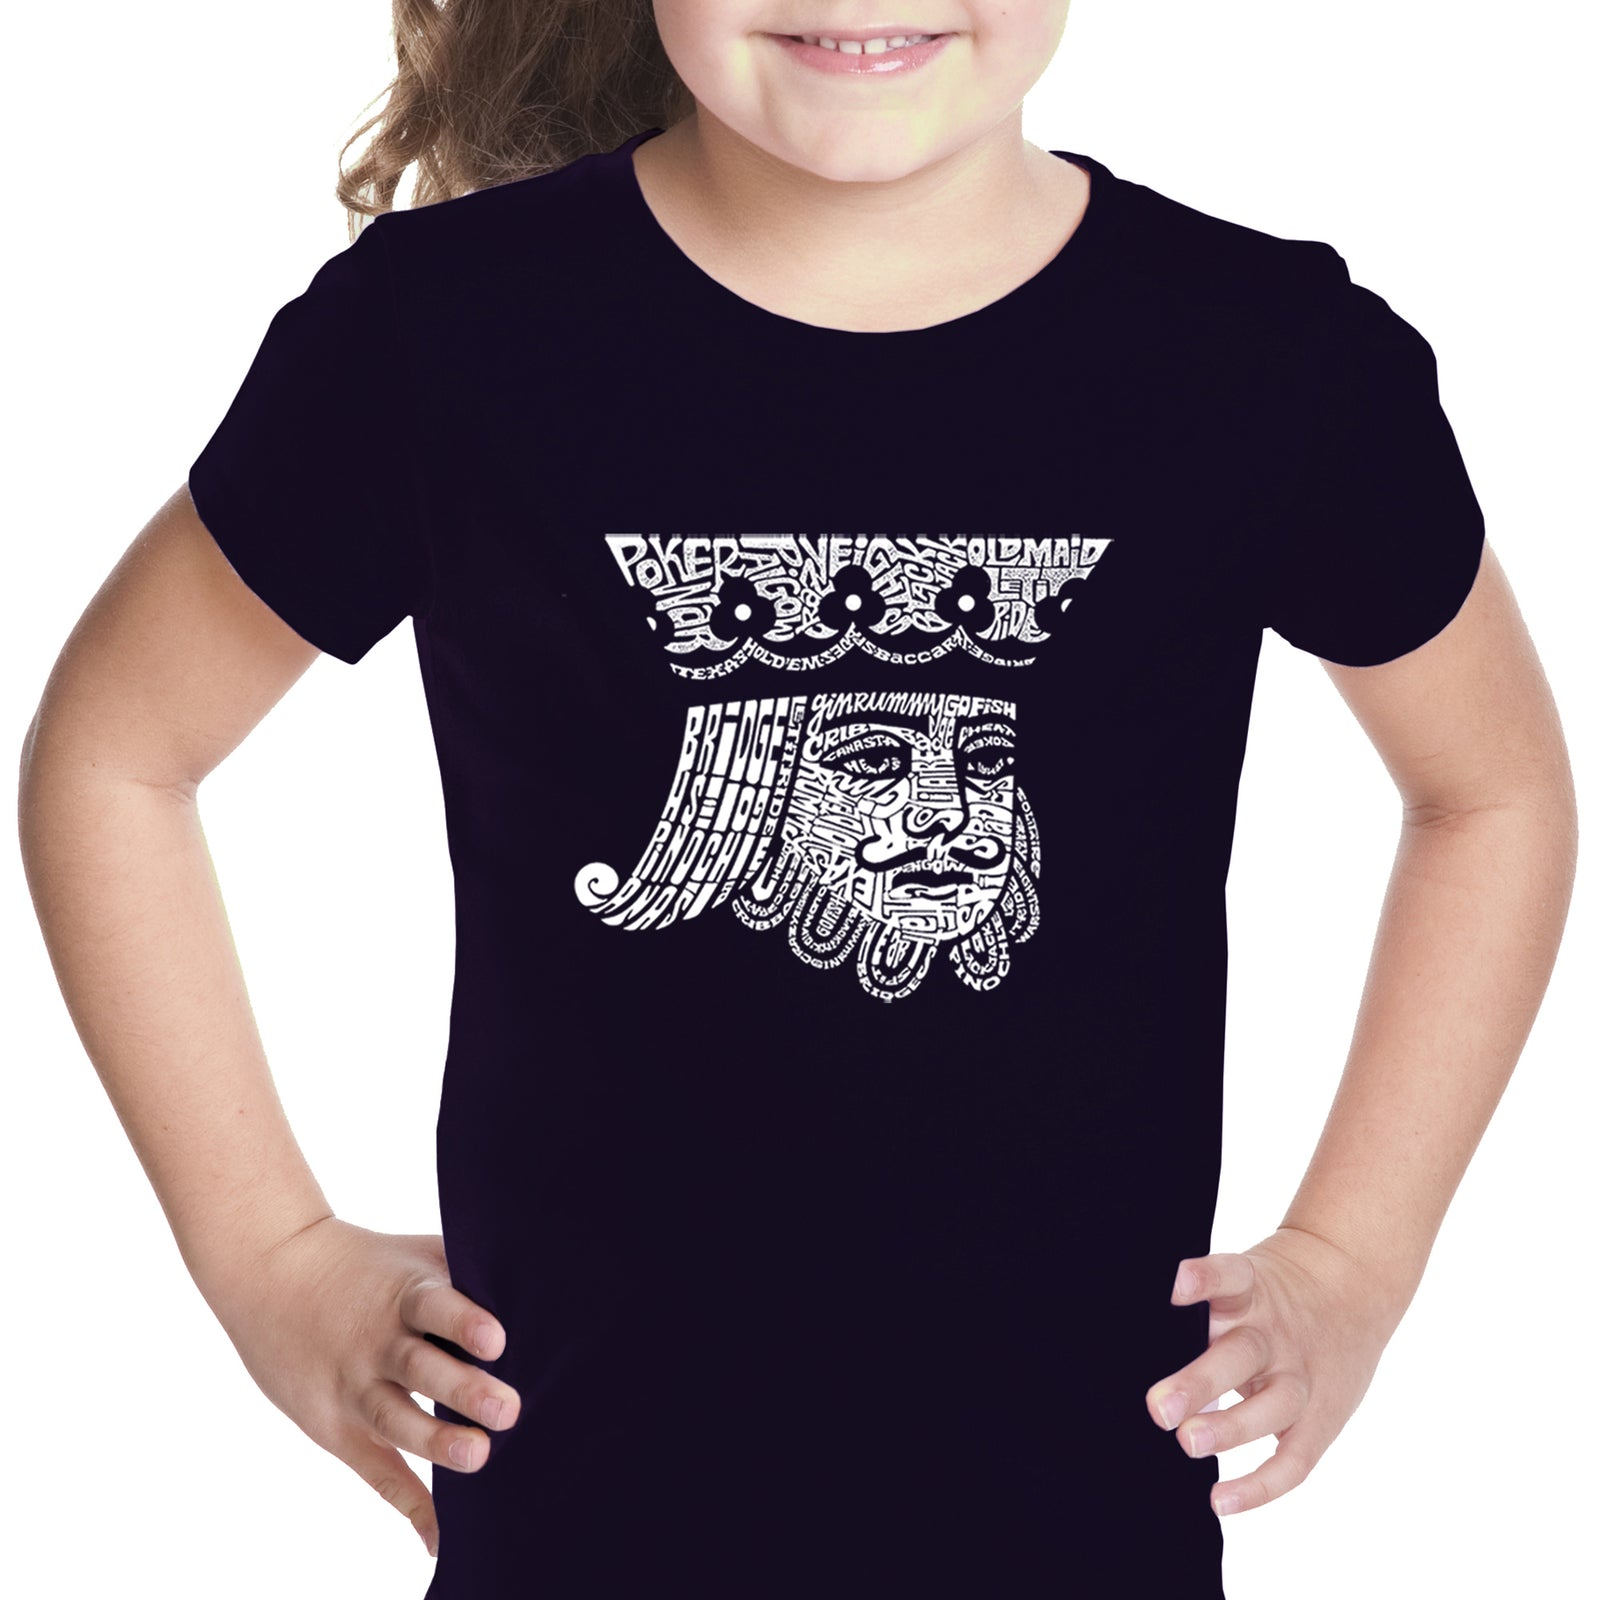 Girl's T-shirt - King of Spades